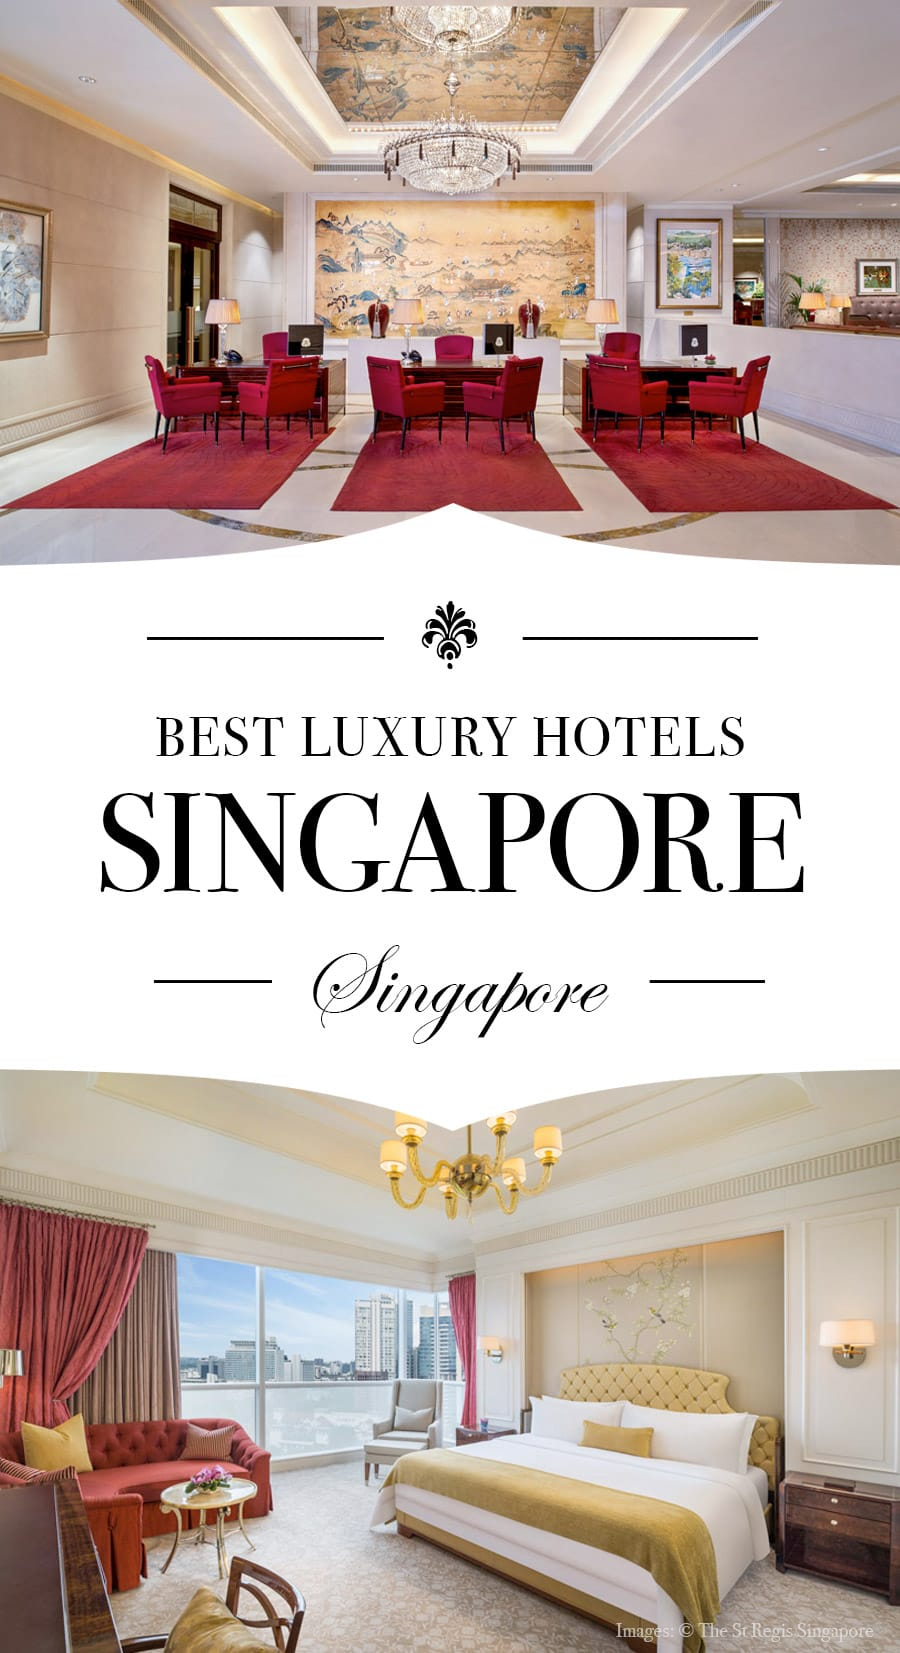 3 Best Luxury Hotels In Singapore Road Affair